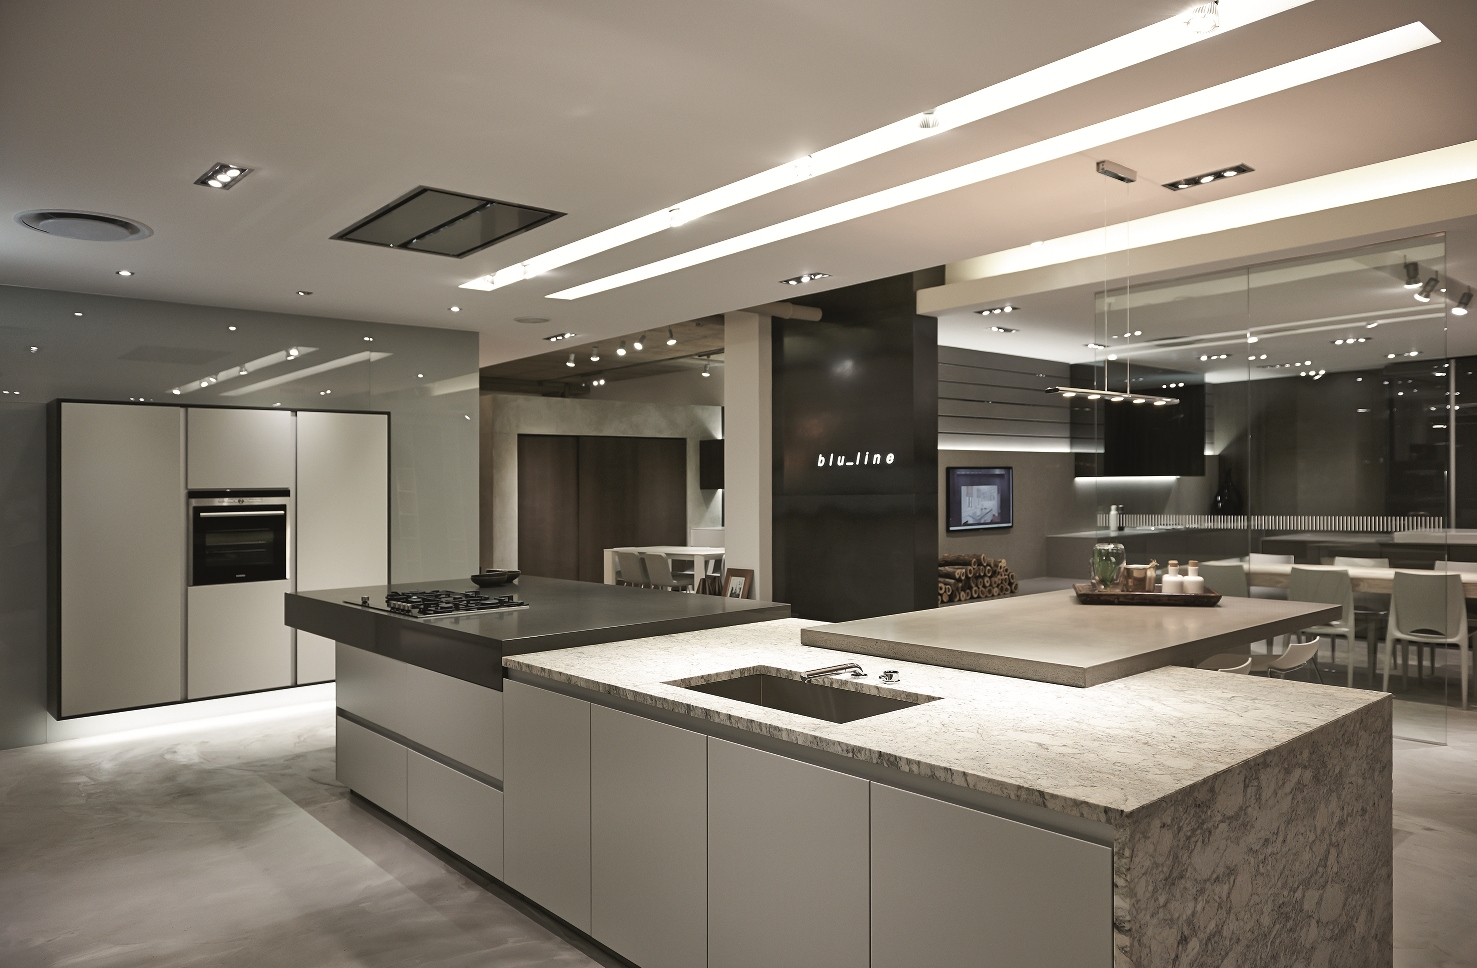 Kitchen showroom design ideas with images - Kitchen design expo ...